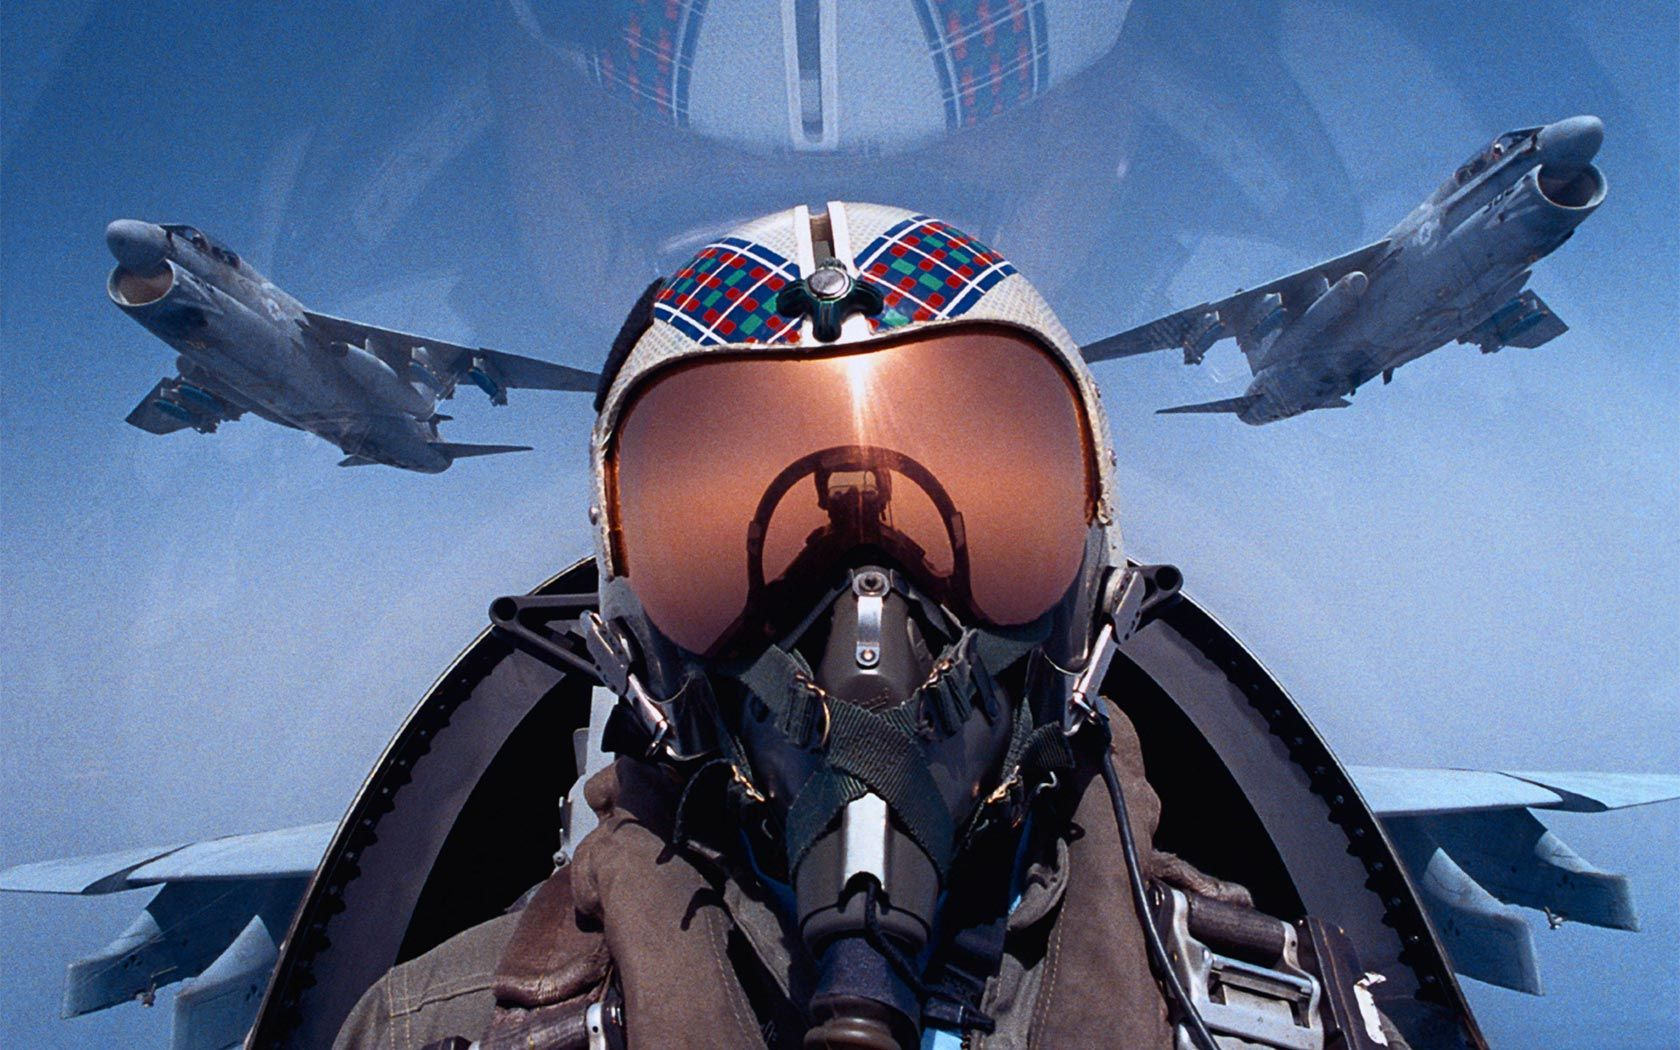 fighter jet pilot hd iphone wallpaper | sandykz | pinterest